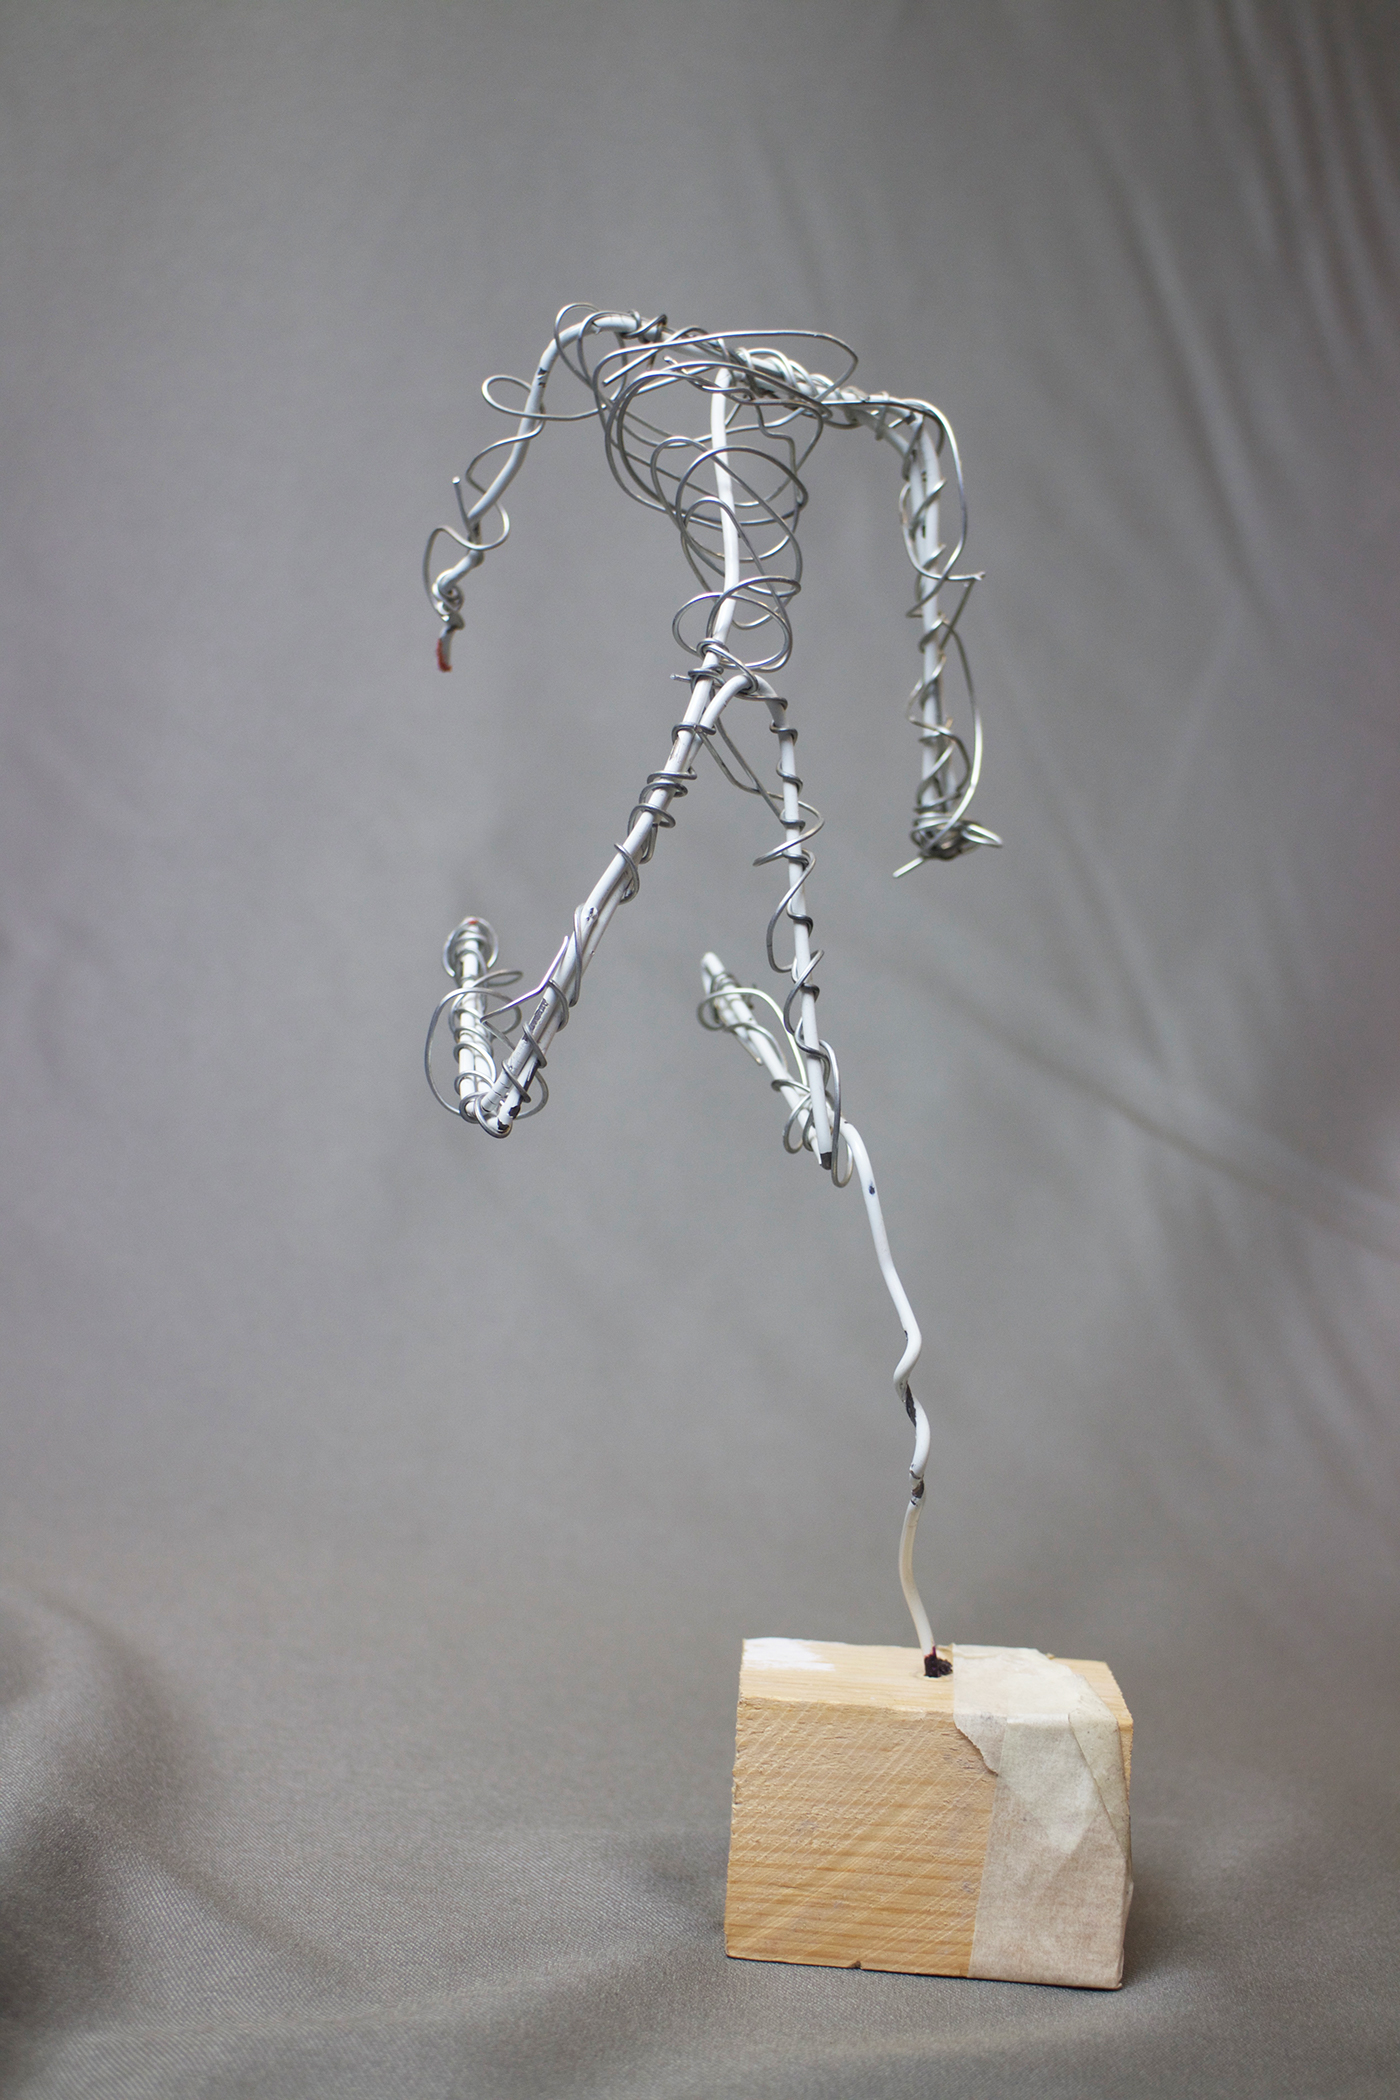 The First Design Was Very Minimal And Focused On Capturing Human Form In Simplest Way Possible